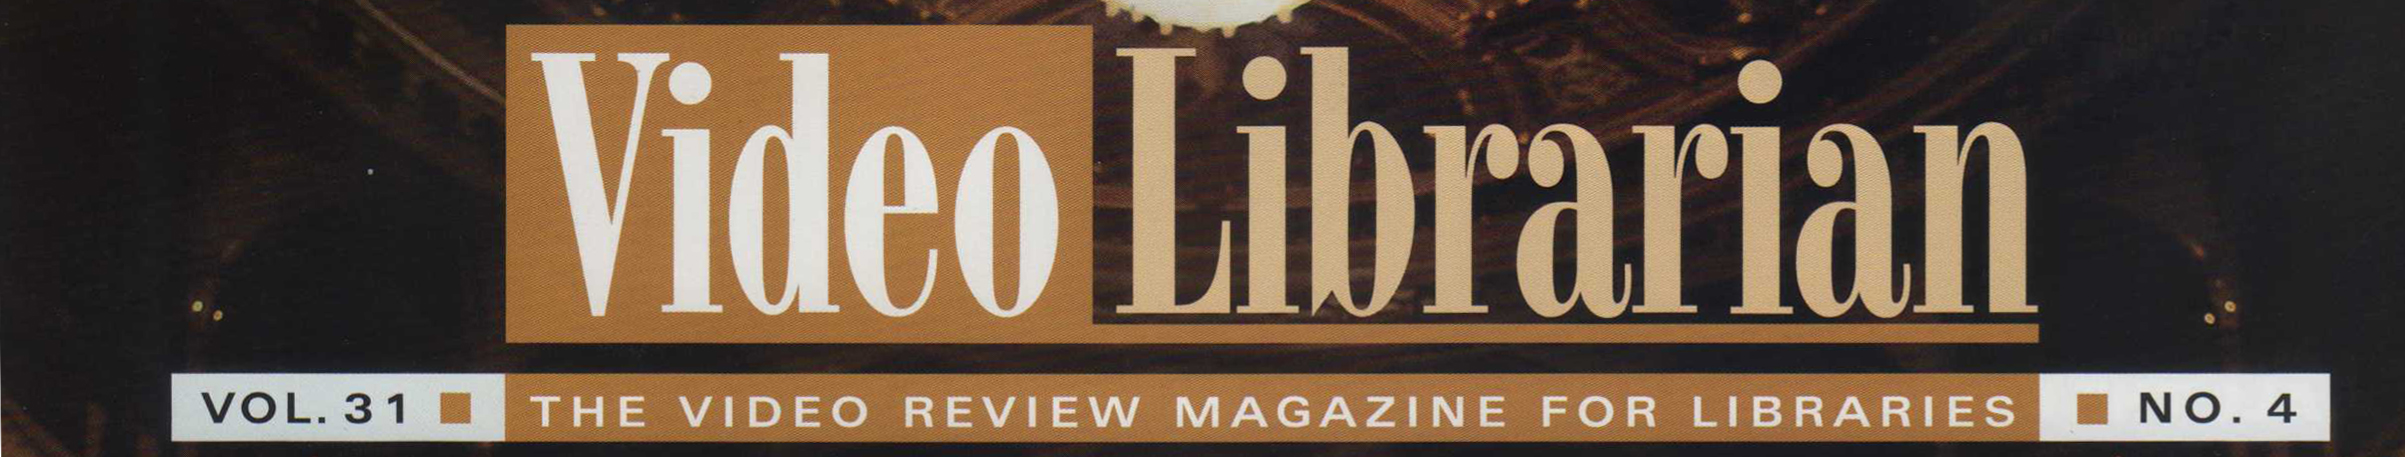 VideoLibrarianCover